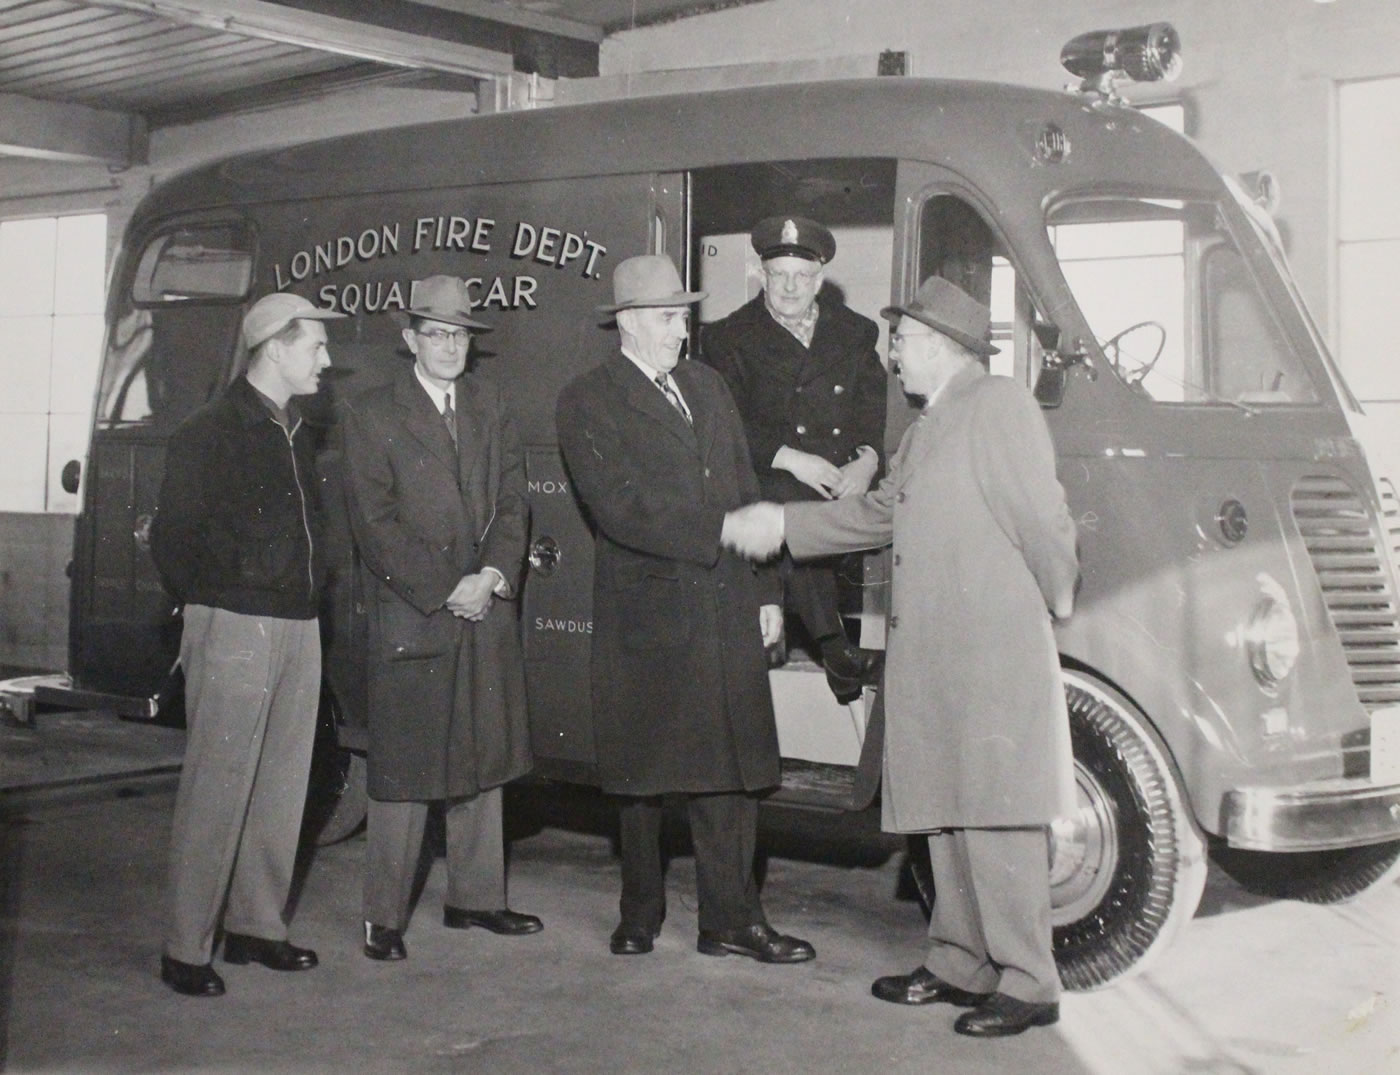 Receiving the new rescue squad